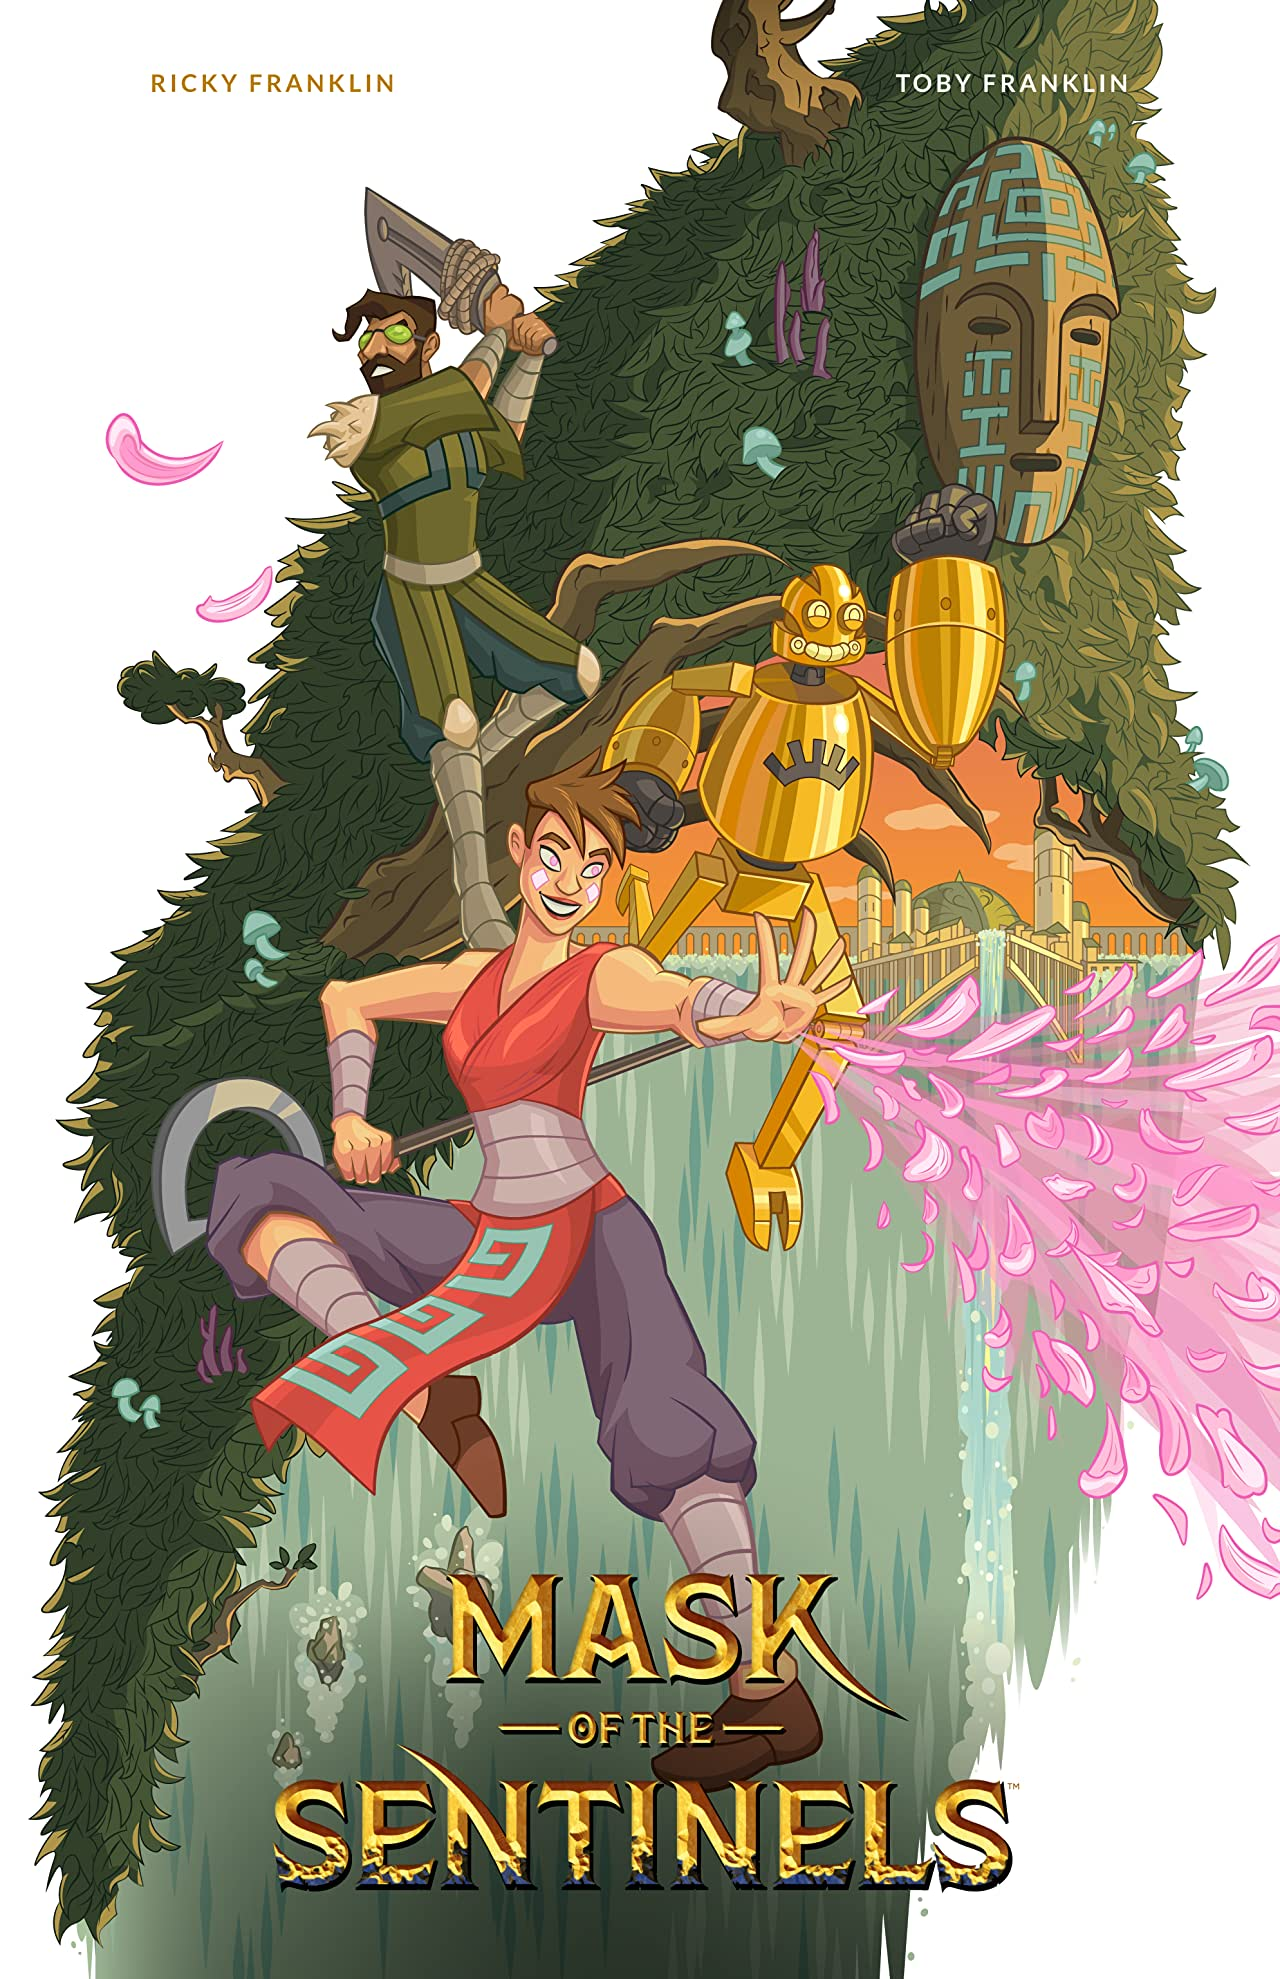 Mask of the Sentinels